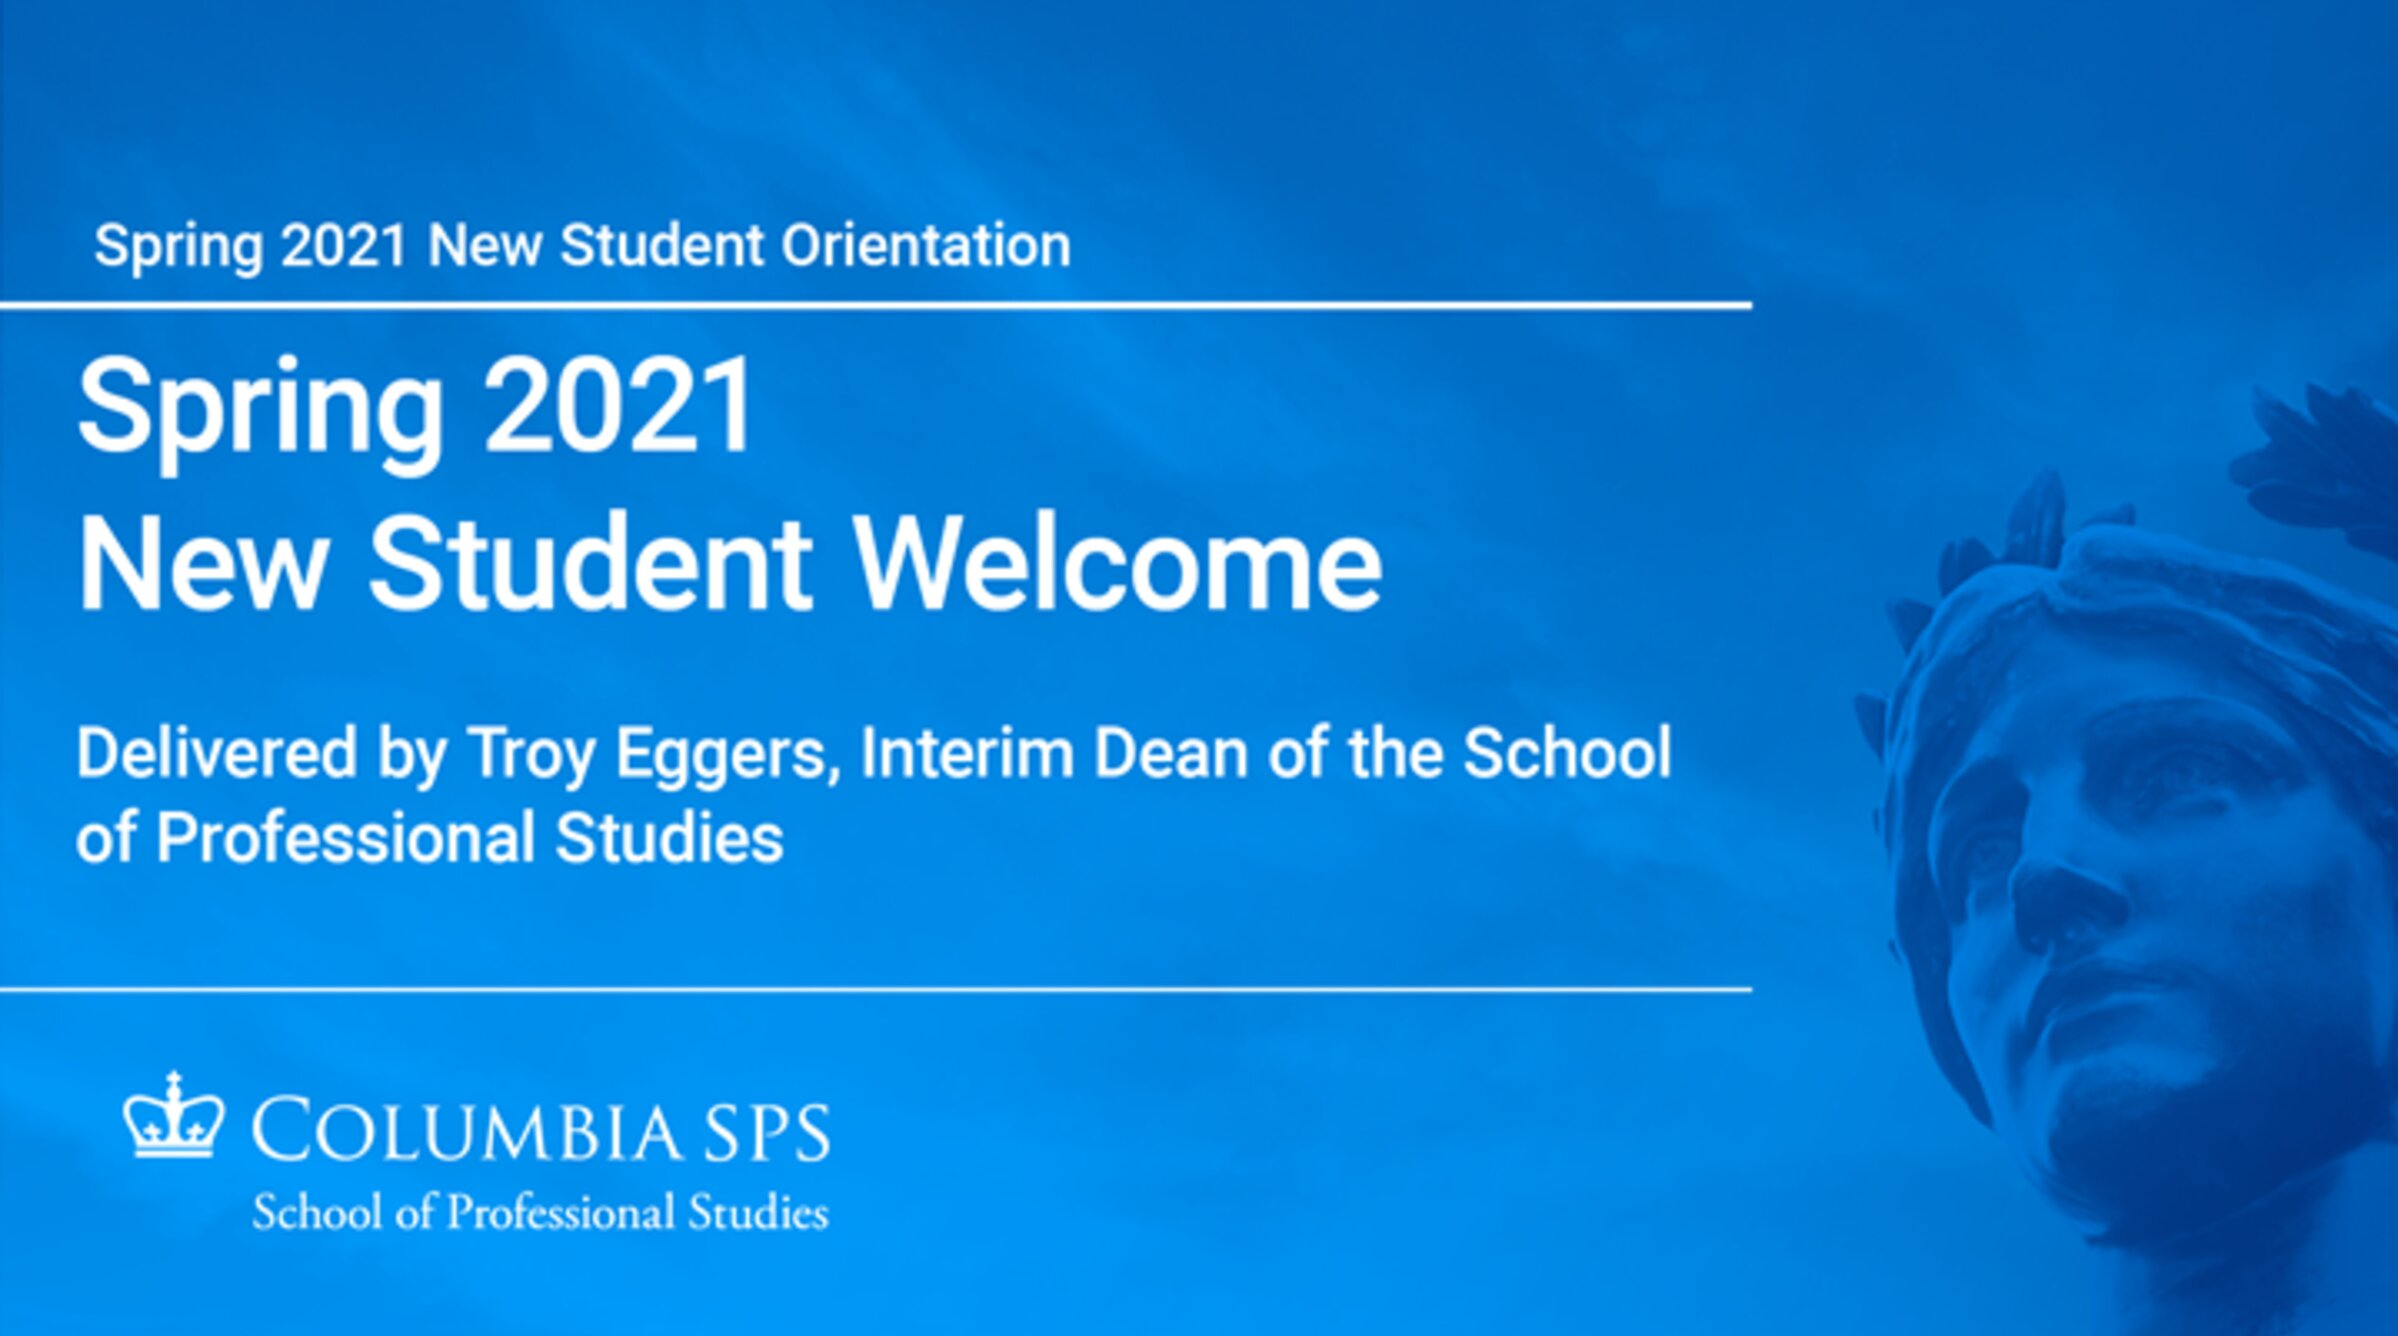 Spring 2021 New Student Welcome